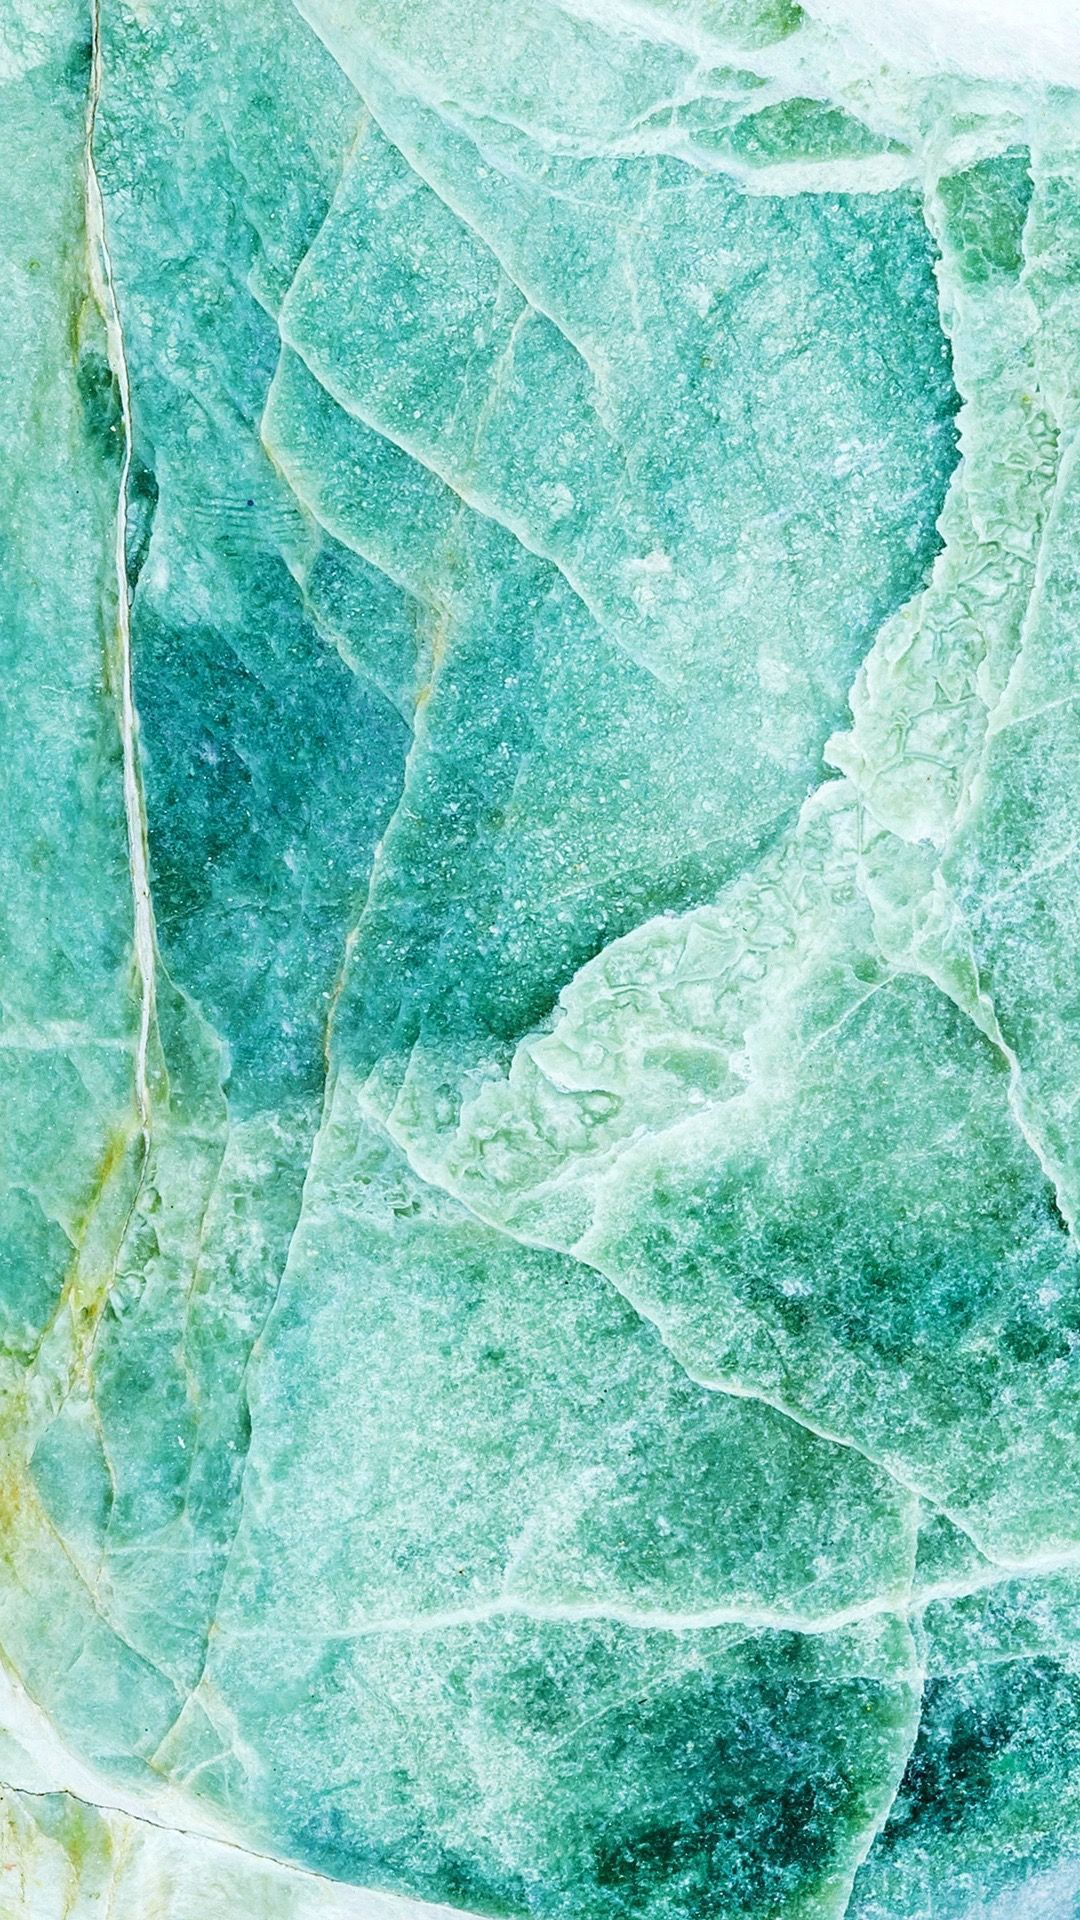 Emerald Green And Gold Wallpaper Ios In 2020 Blue Marble Wallpaper Mint Wallpaper Gold Wallpaper